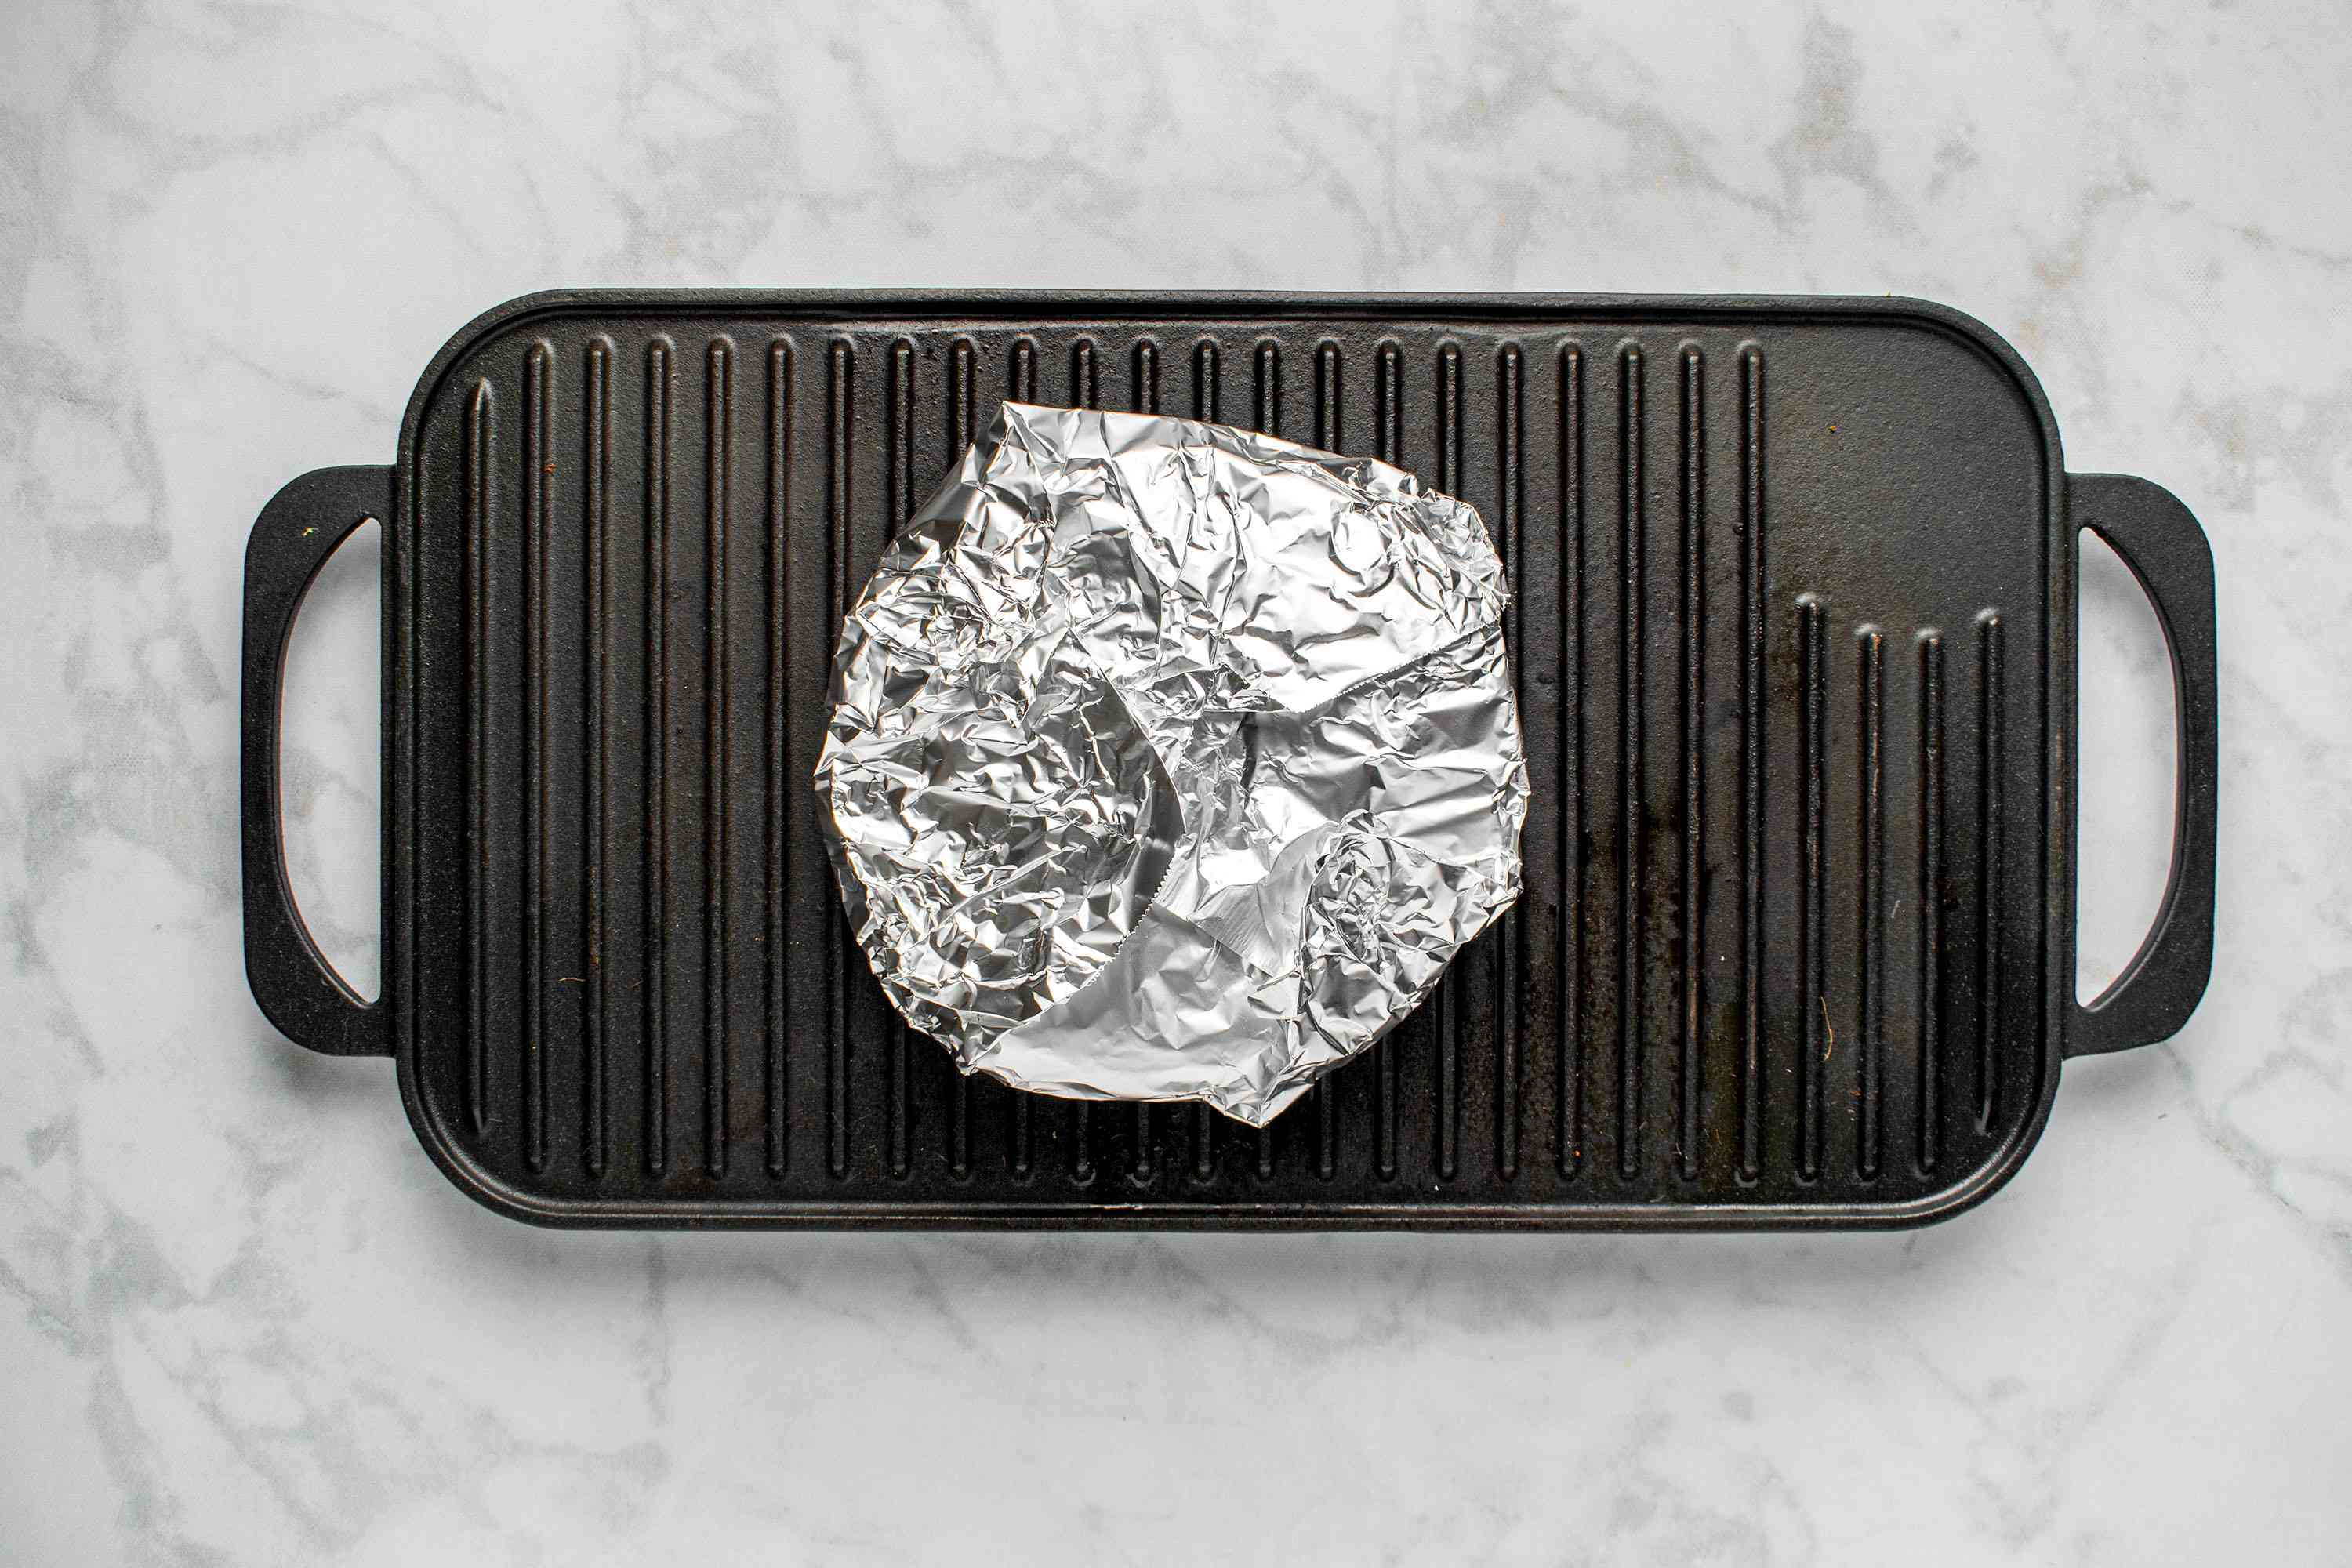 Wrap tortillas in foil and place on top of the grill